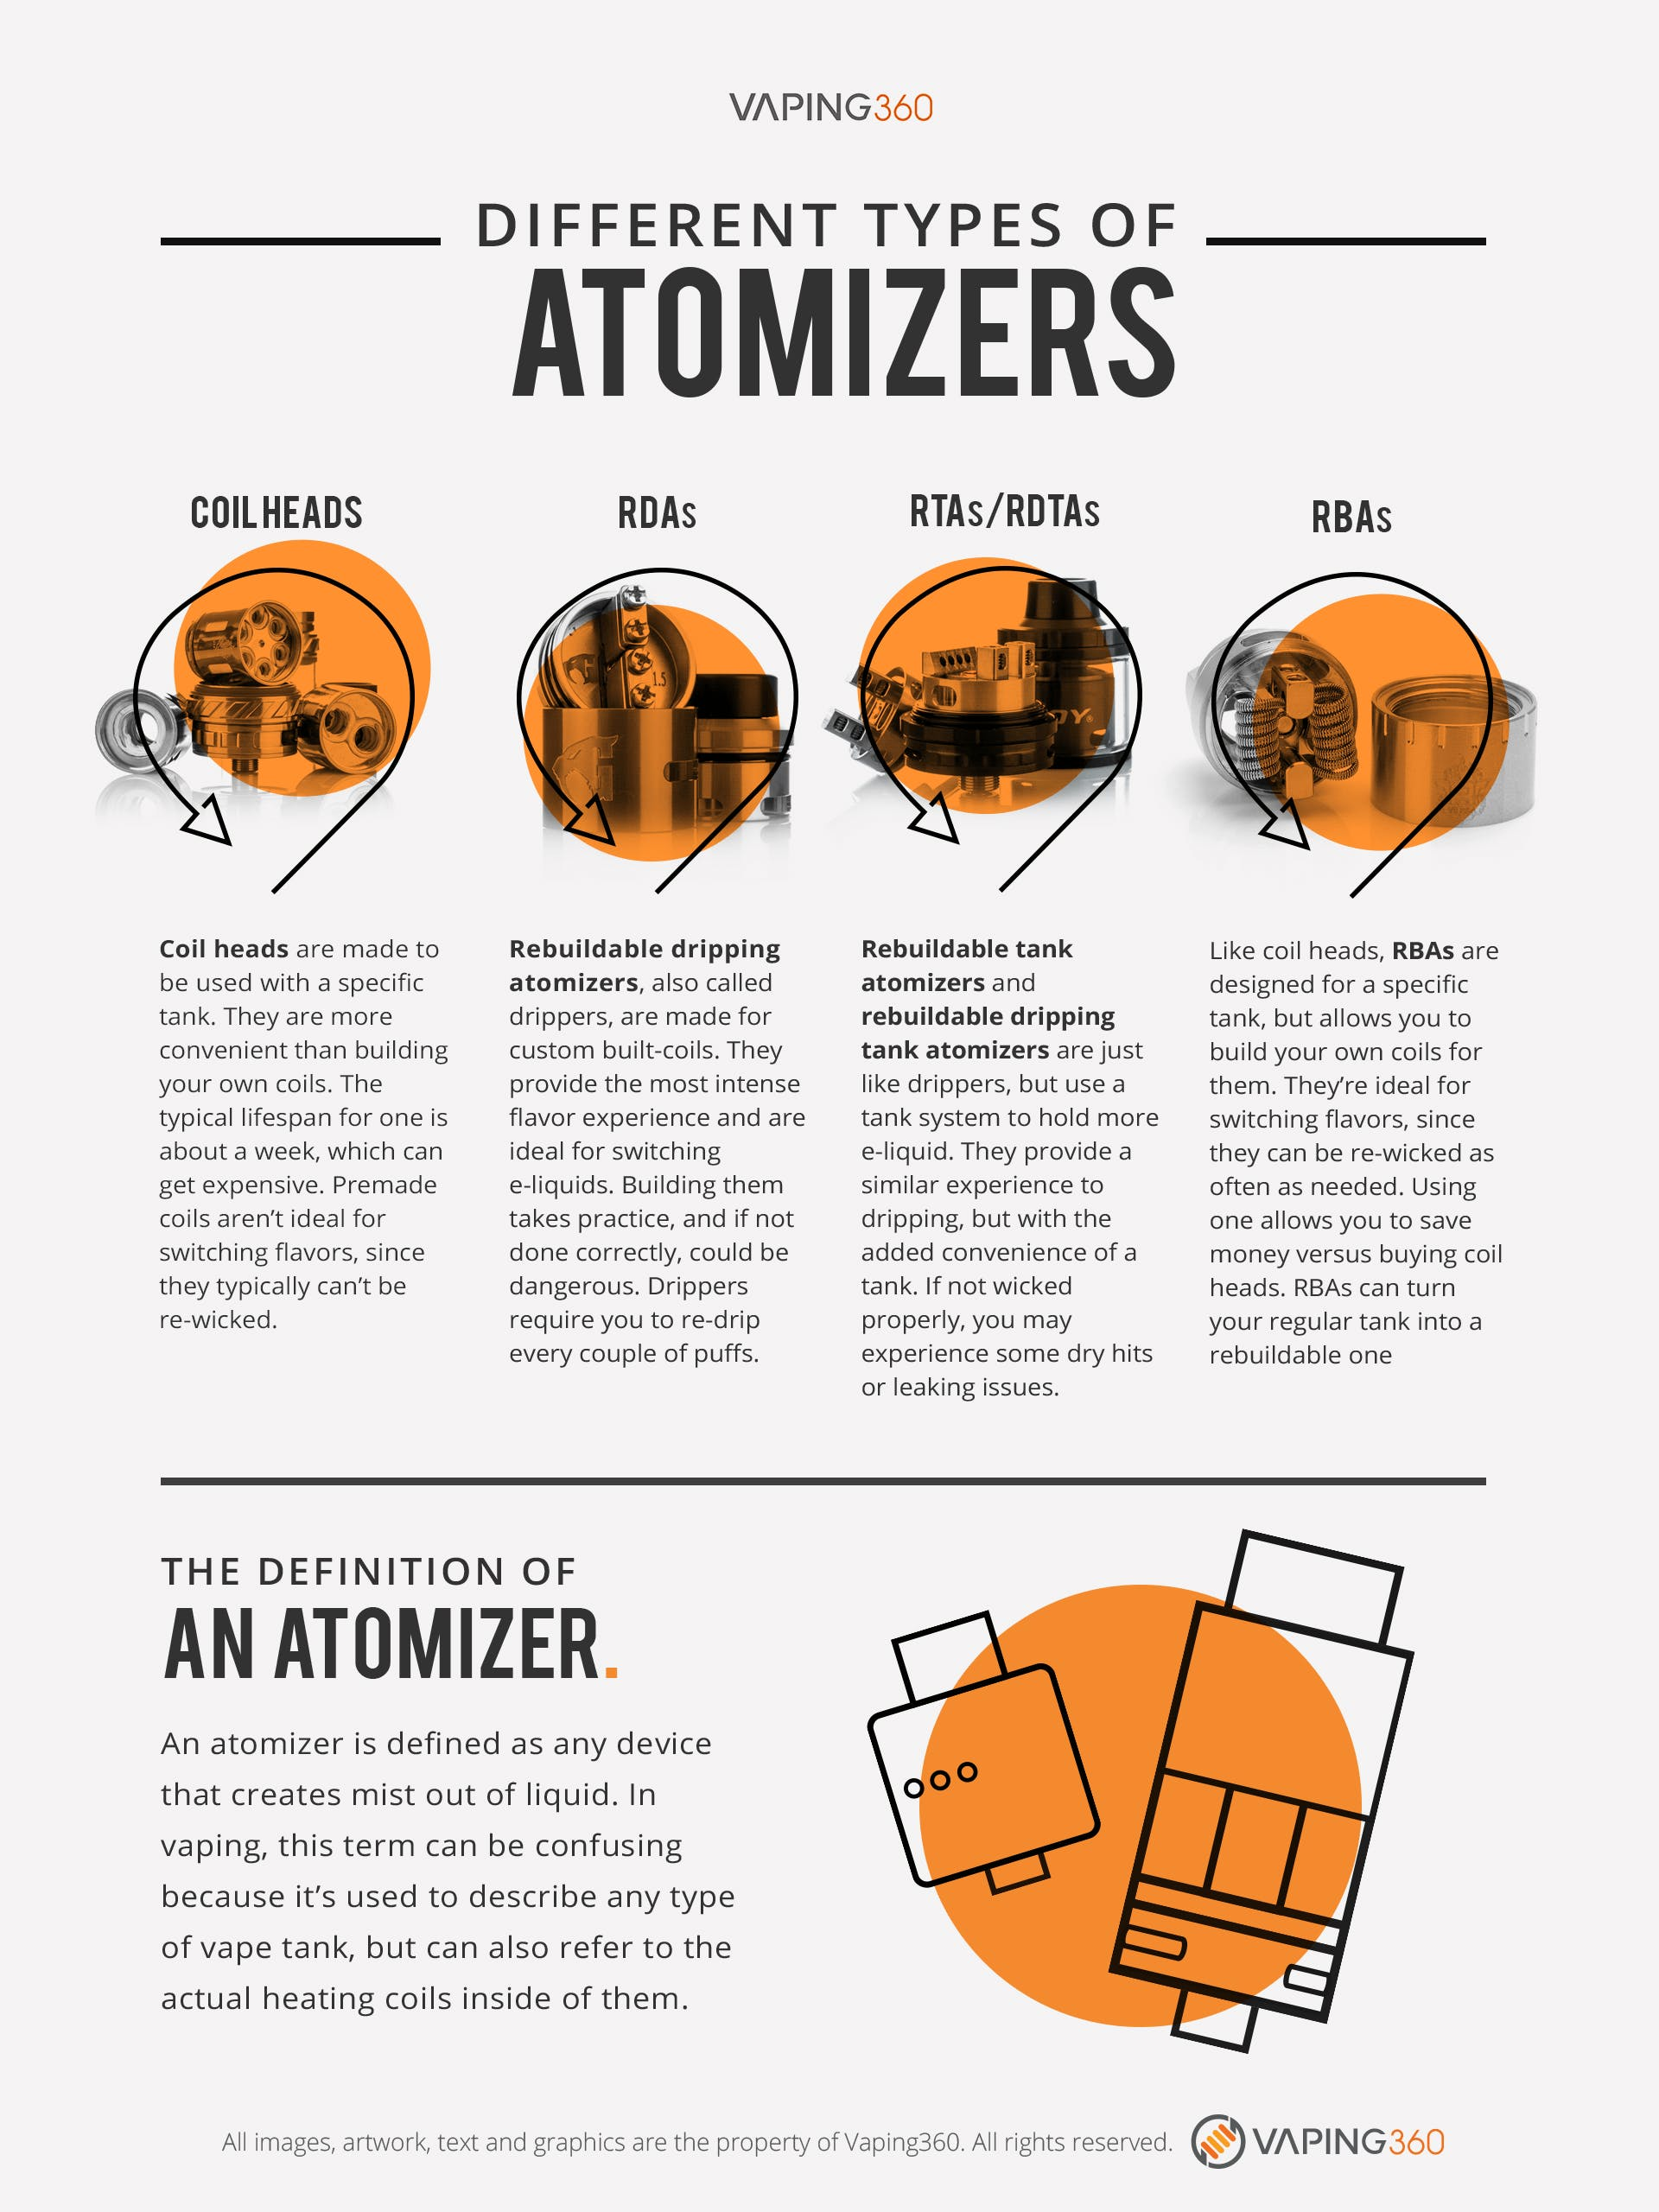 Different Types Of Atomizers-Infographic